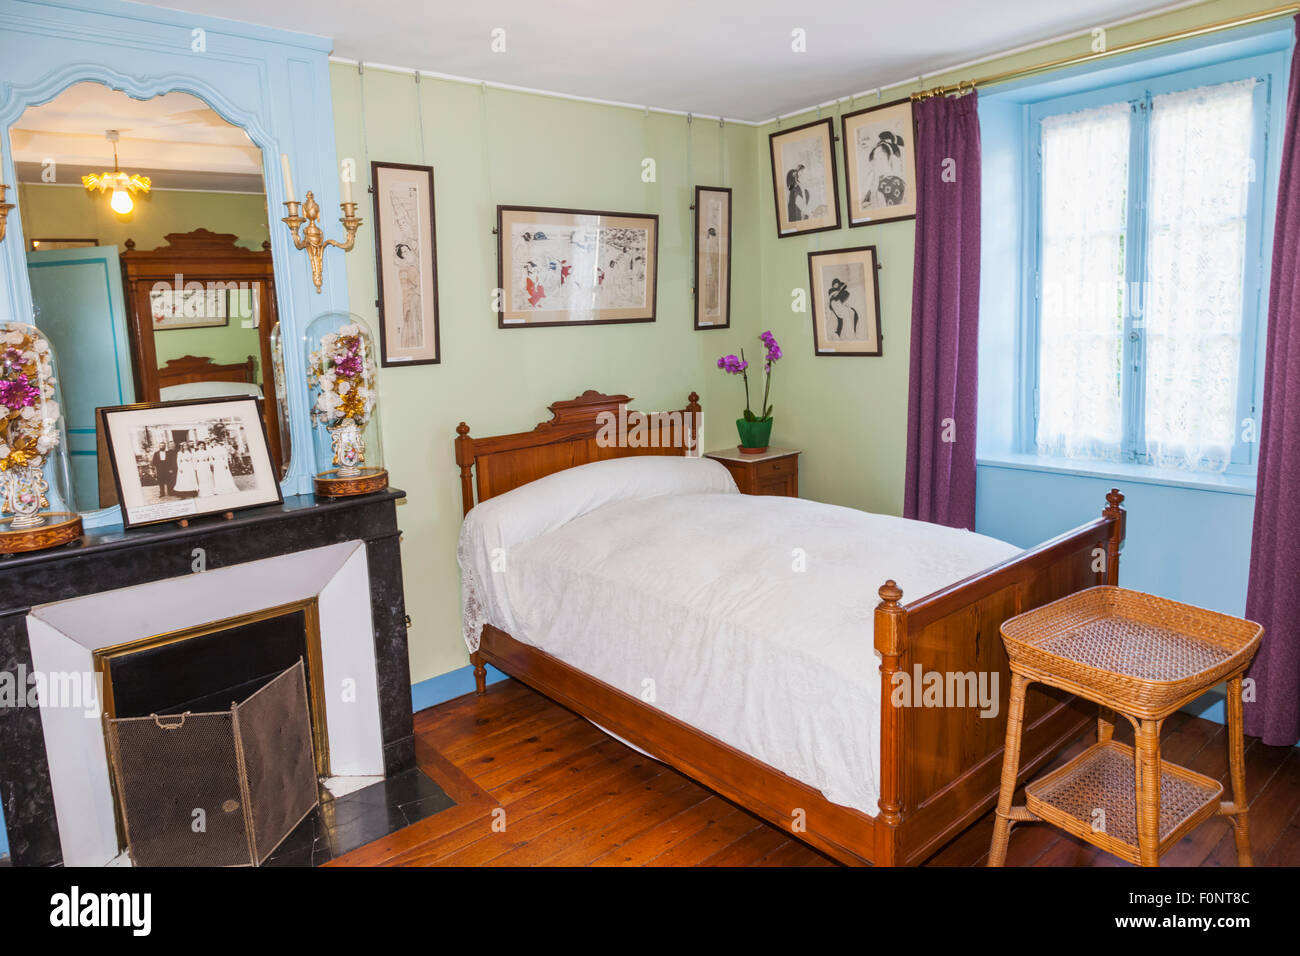 france normandy giverny monets garden monet 39 s house alice 39 s stock photo royalty free image. Black Bedroom Furniture Sets. Home Design Ideas